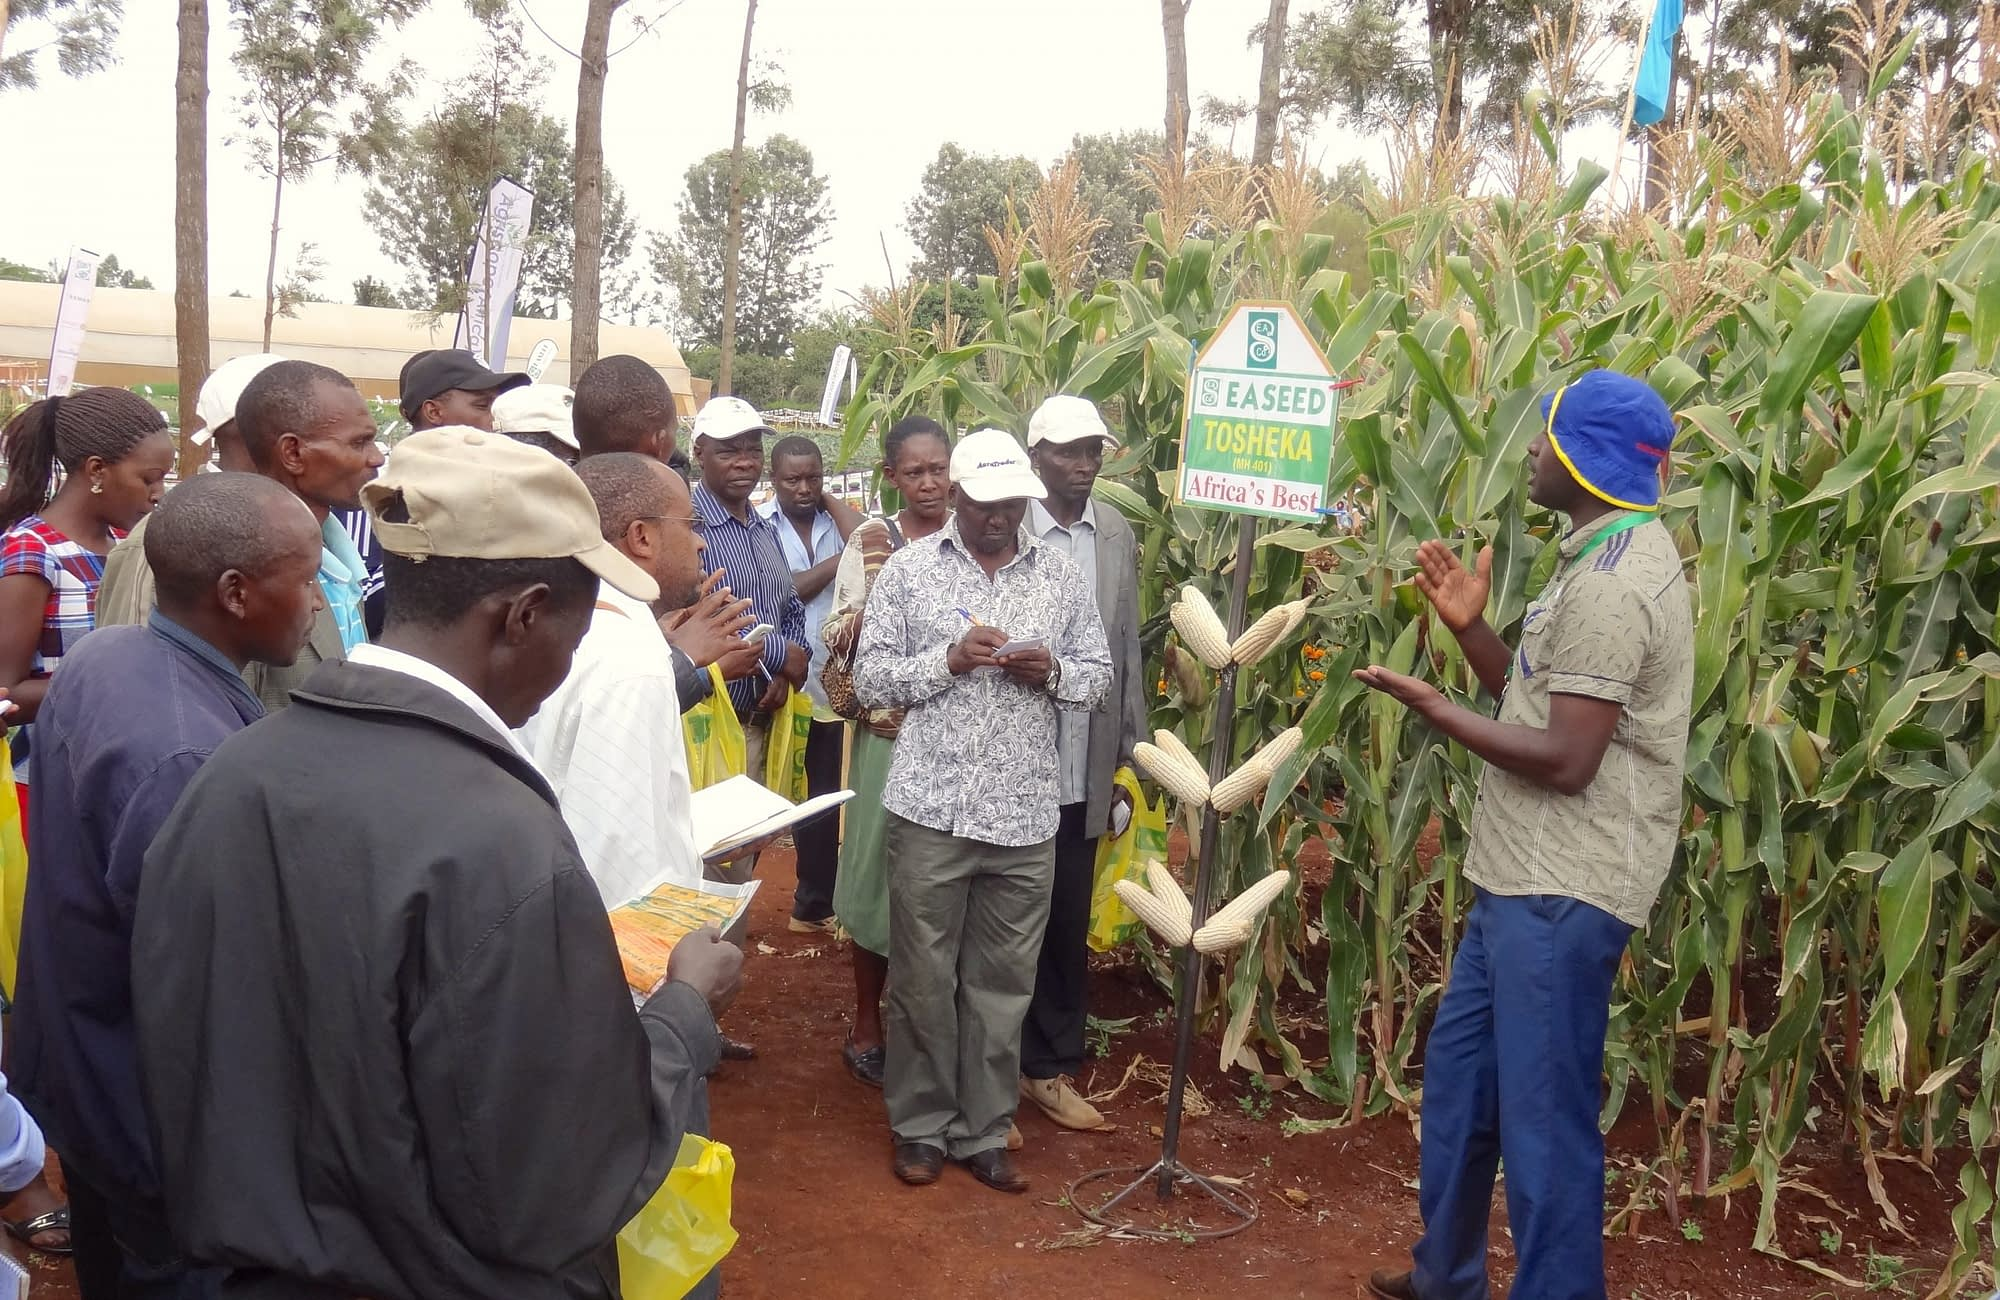 Farmers at a demonstration farm field day organized by East African Seed Company. (Photo: Courtesy)